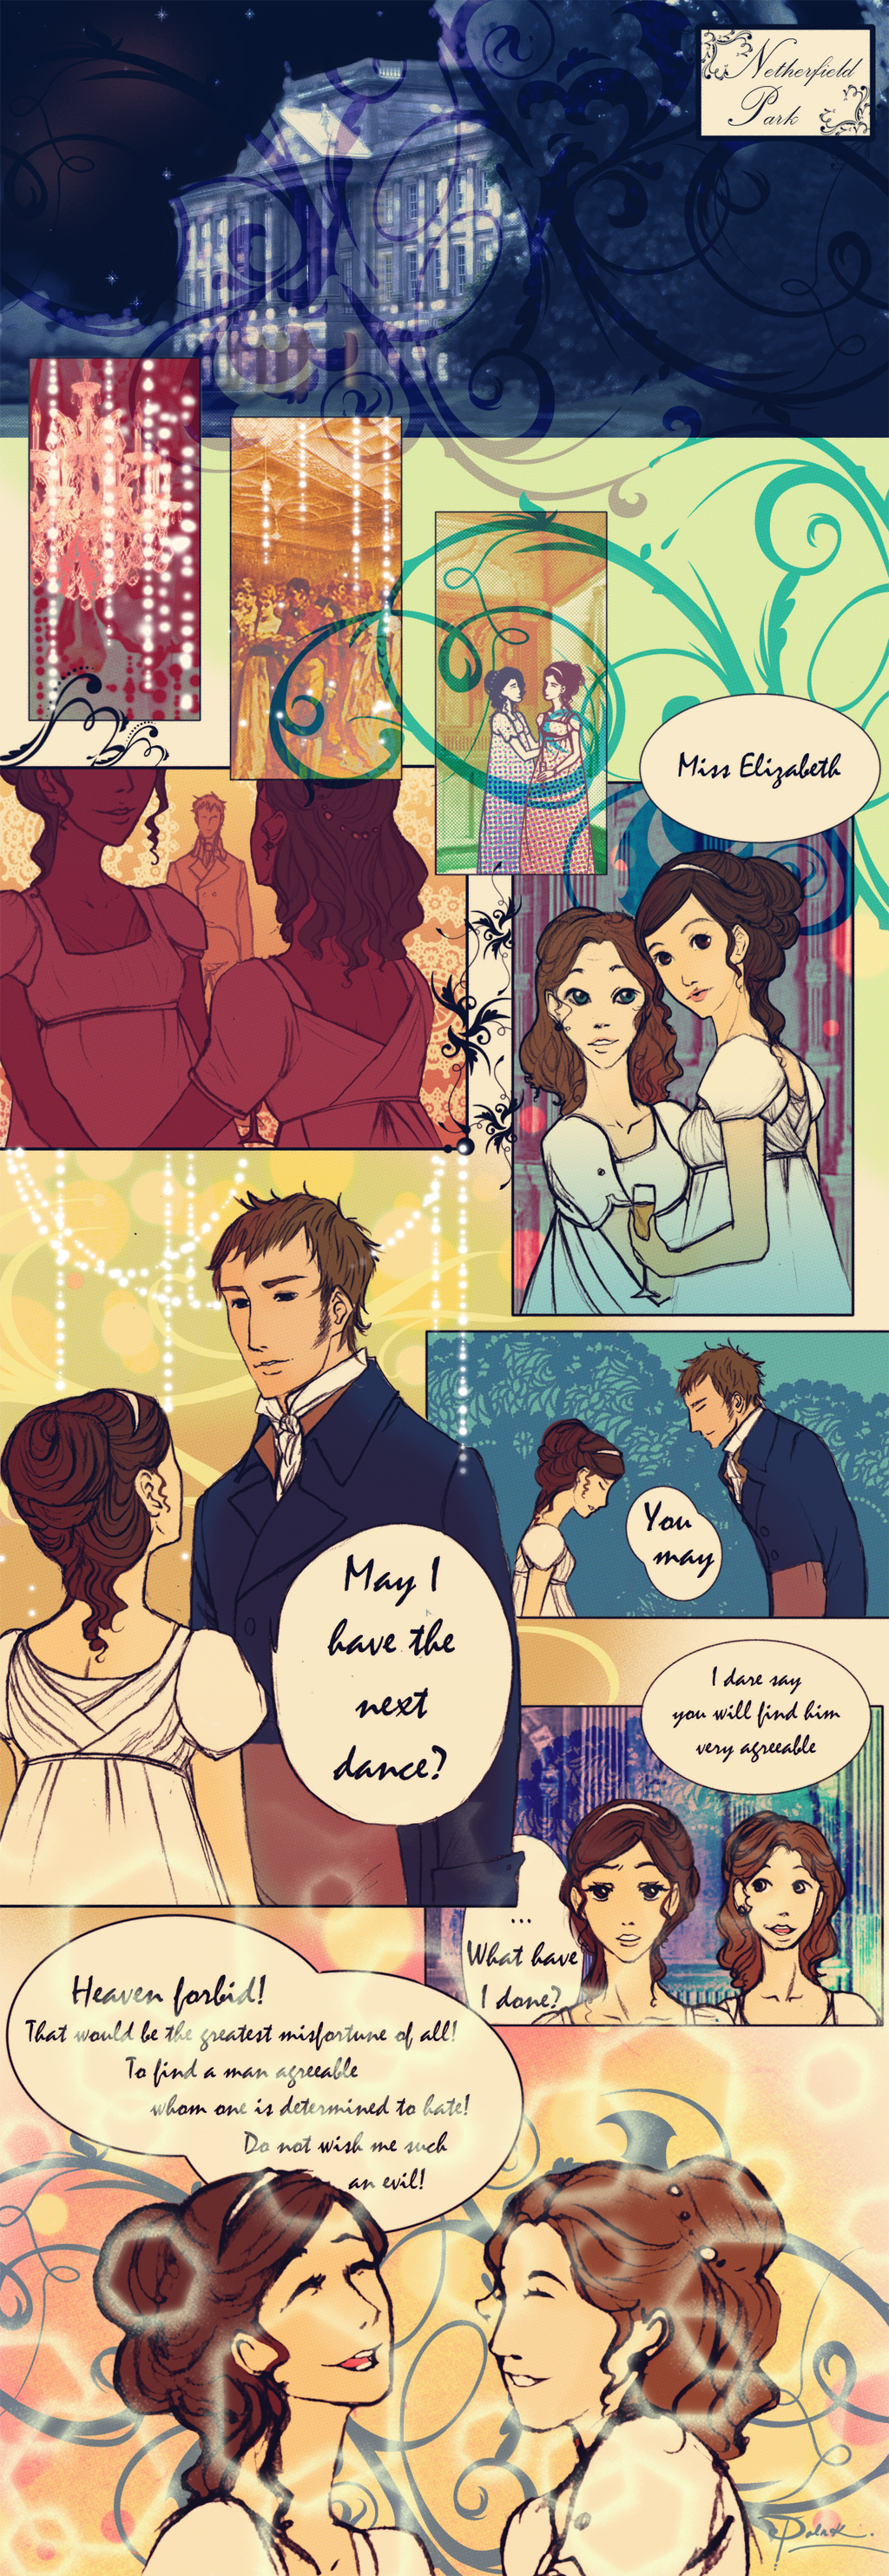 Netherfield Ball Scene page 1